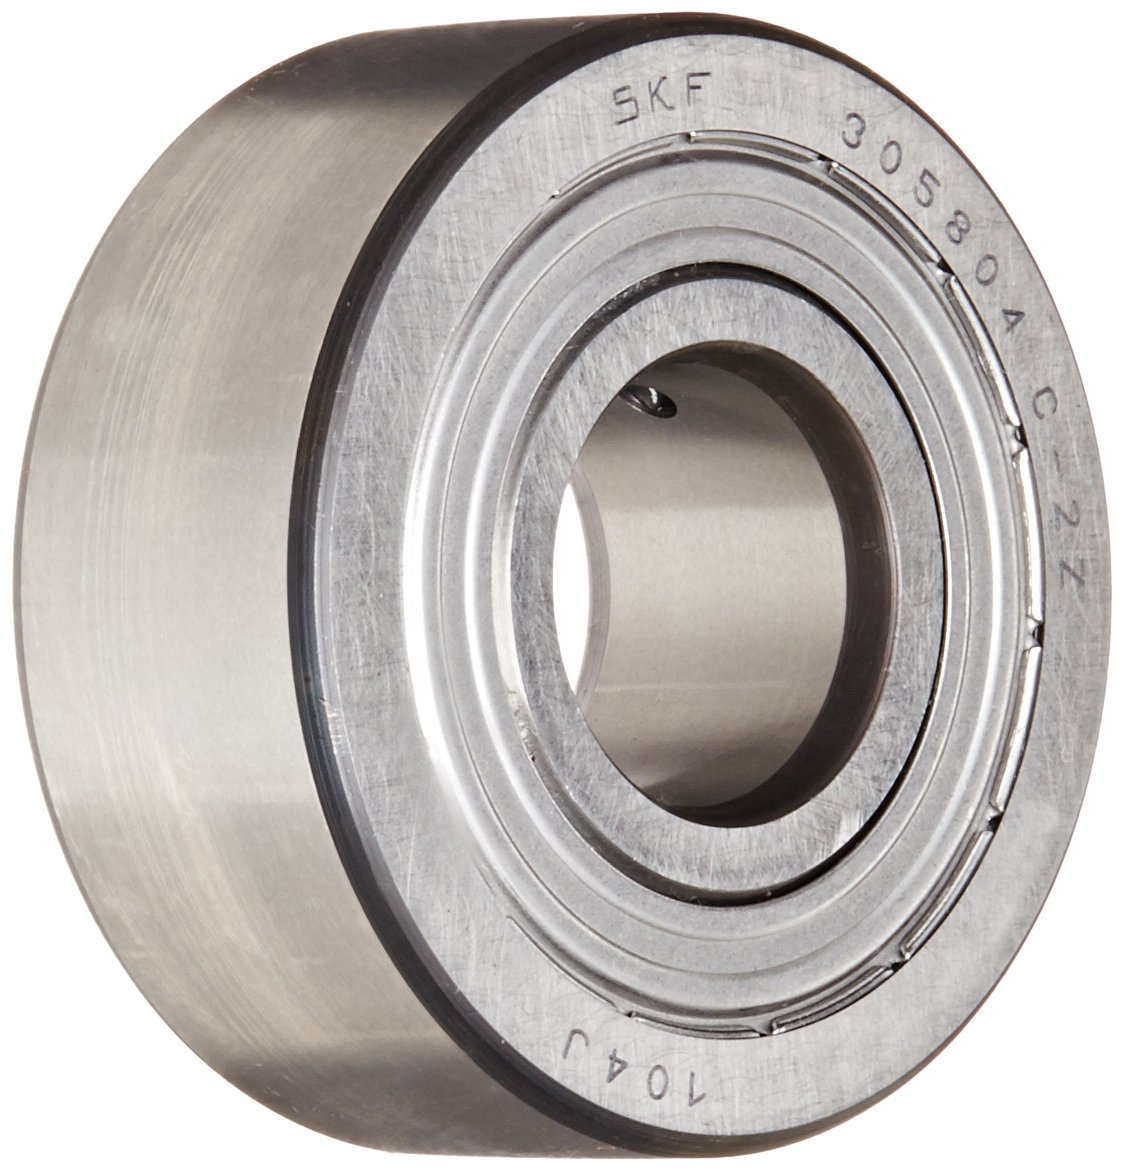 SKF 305804 C-2Z Yoke Type Track Roller, Crowned OD, Shielded, Metric, 20mm Bore, 52mm OD, 20.6mm Width